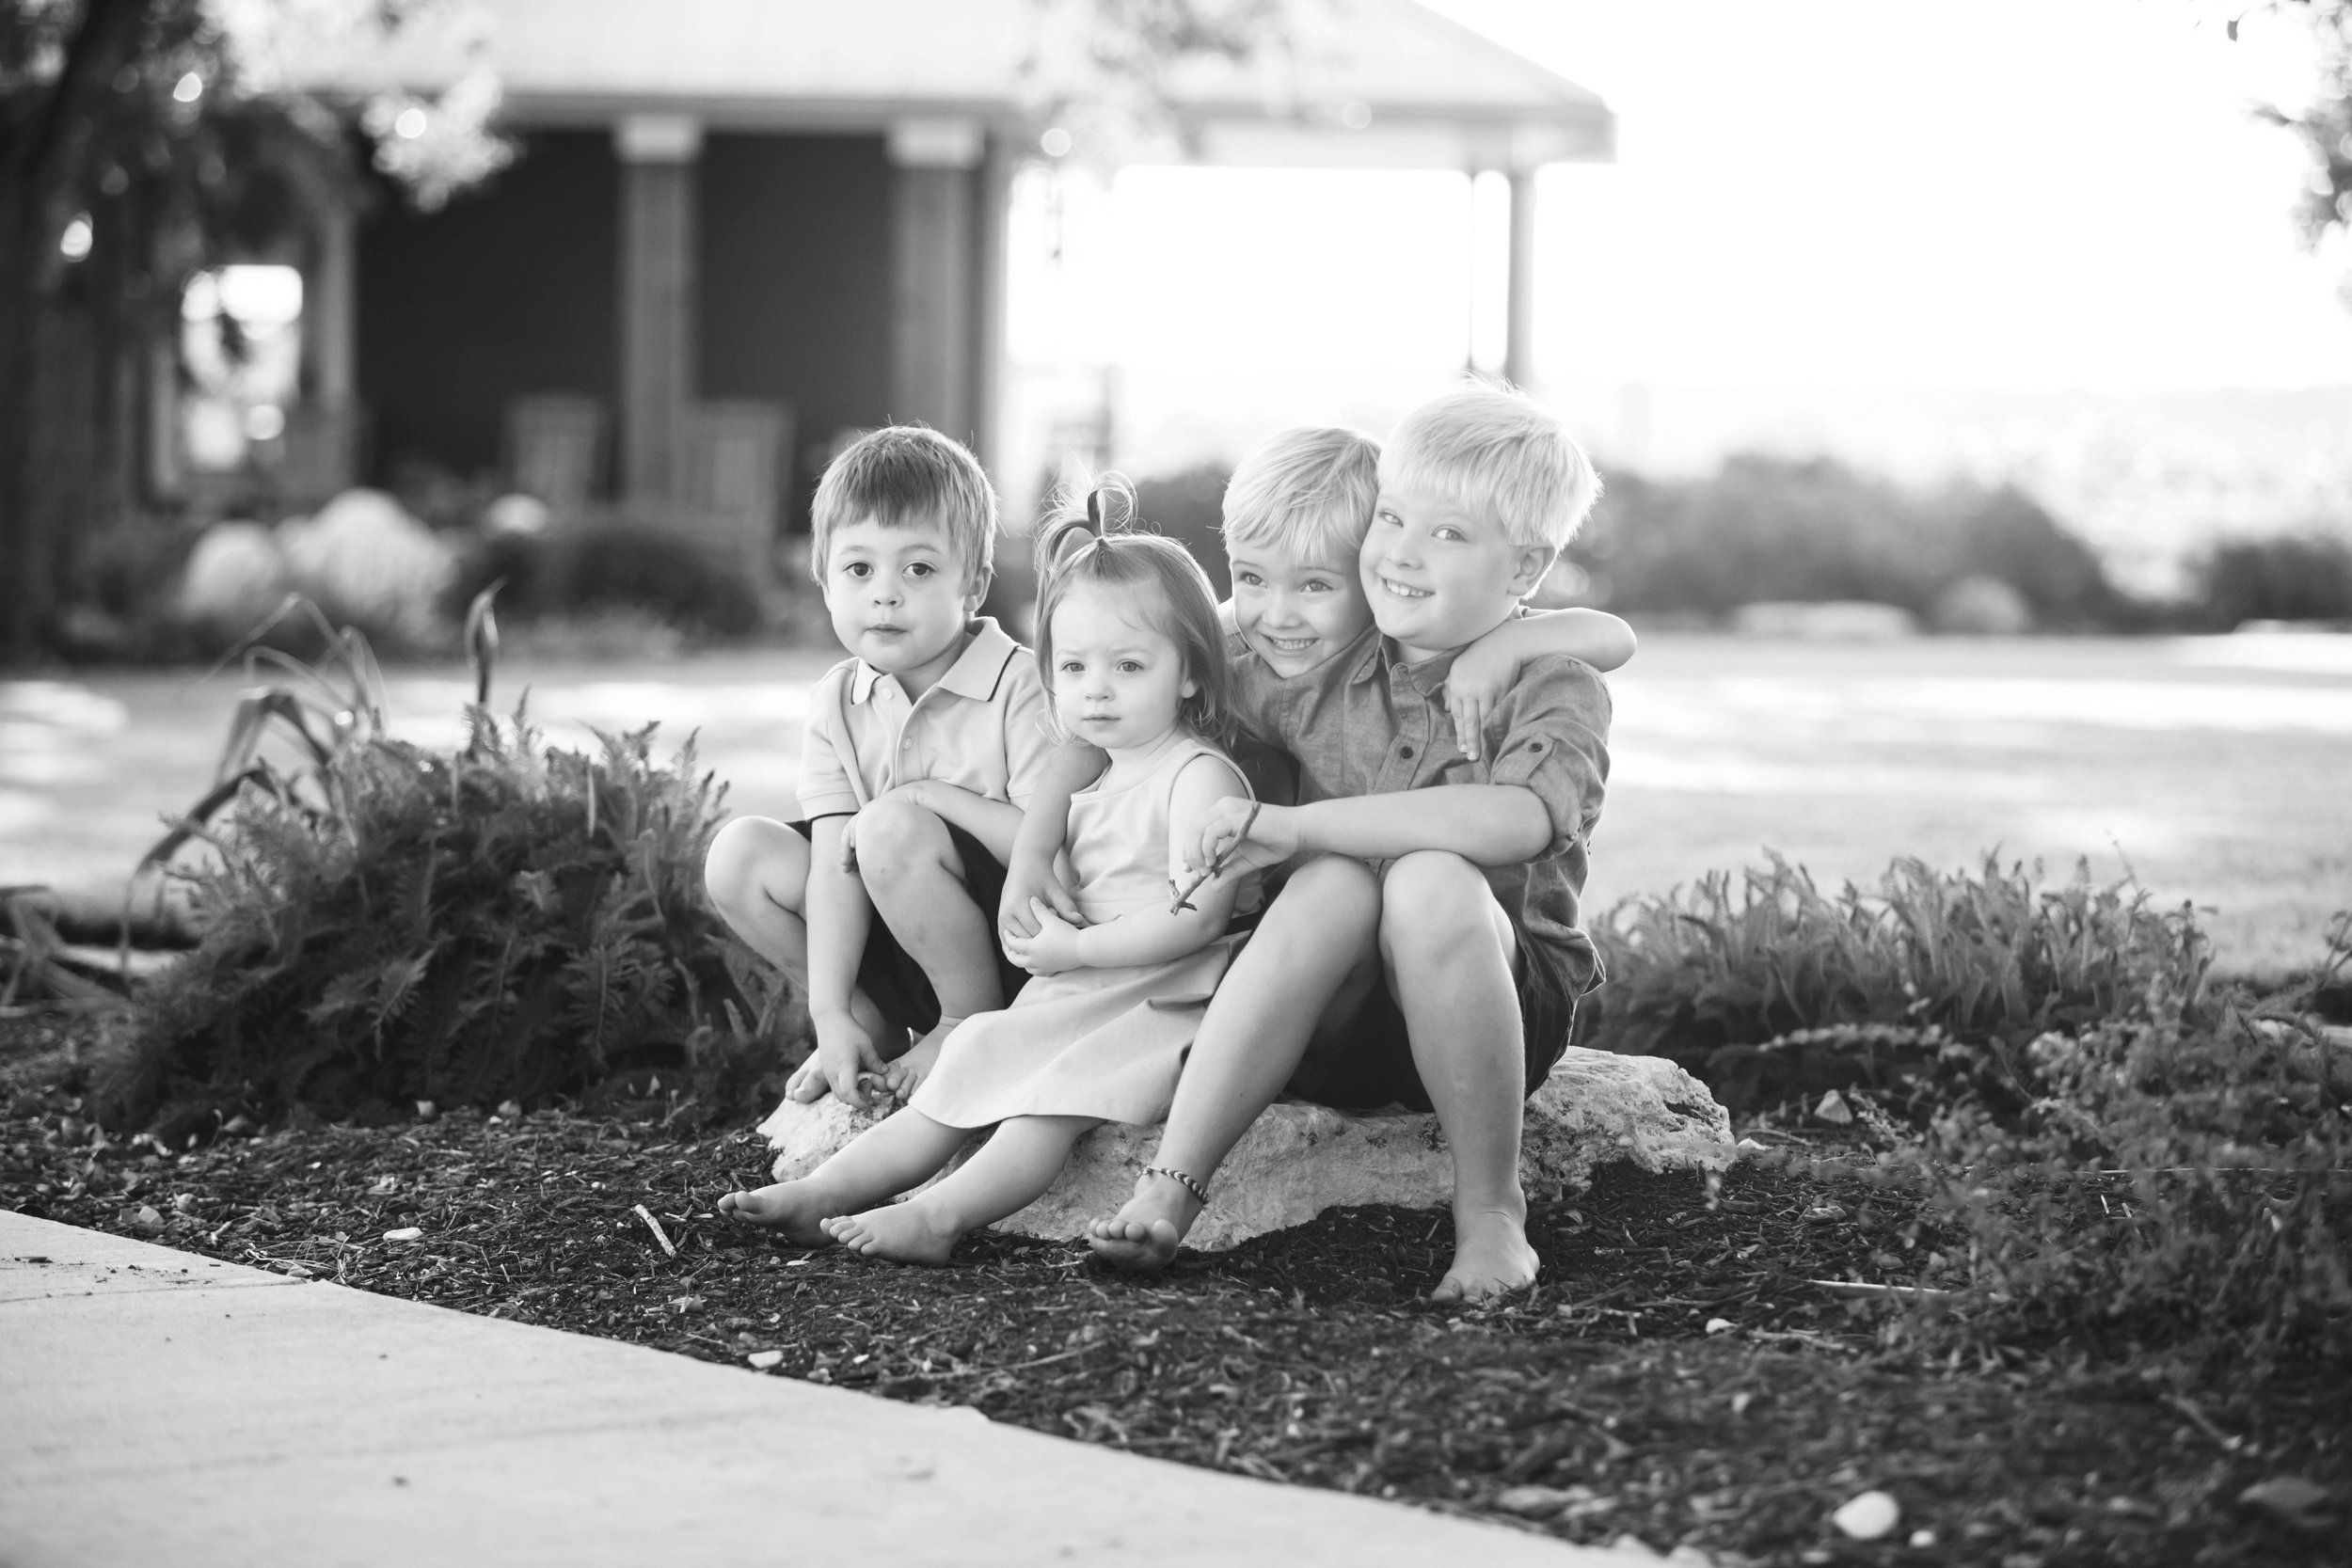 Marble_Falls_Family_Photographer_Farm_Jenna_Petty_02.jpg